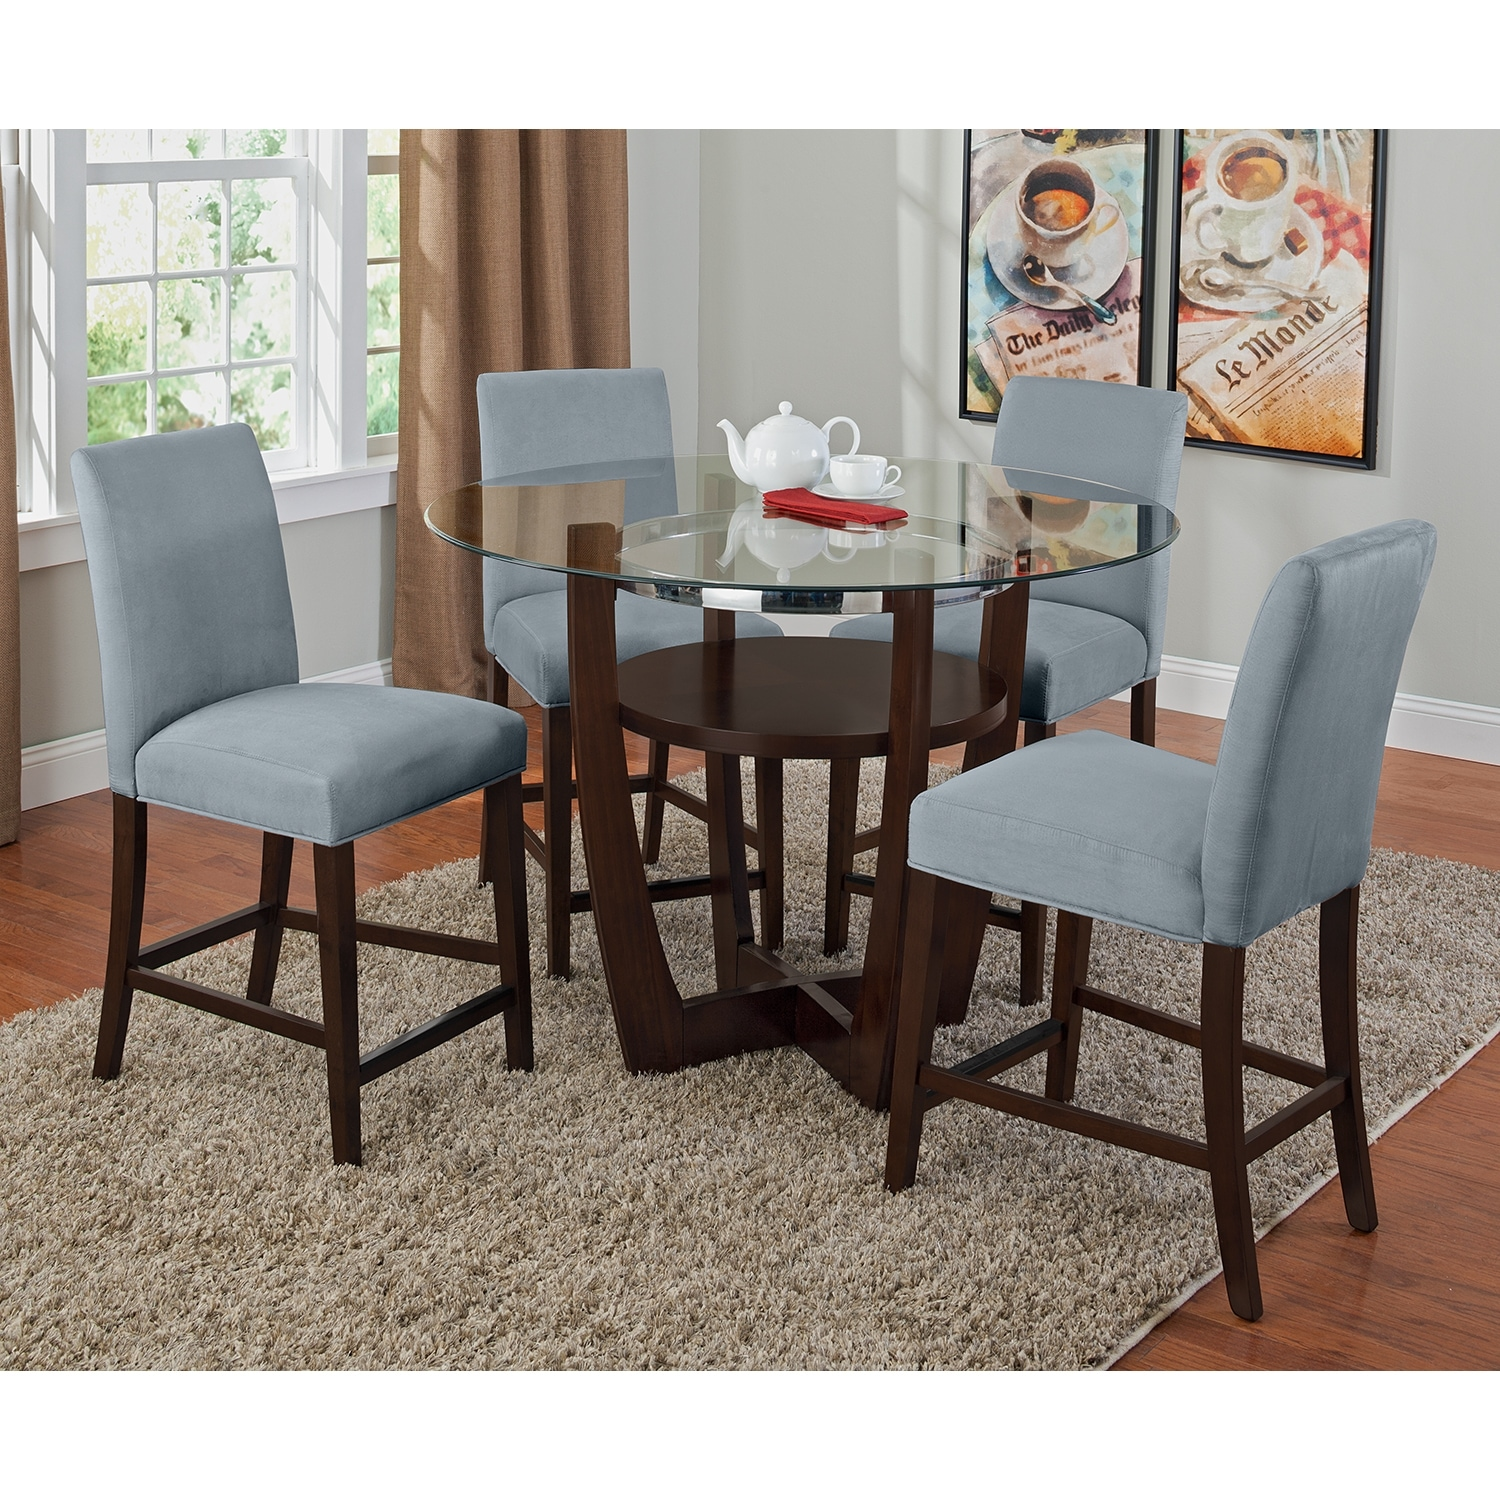 City Furniture Dining Room: Alcove Counter-Height Dinette With 4 Side Chairs